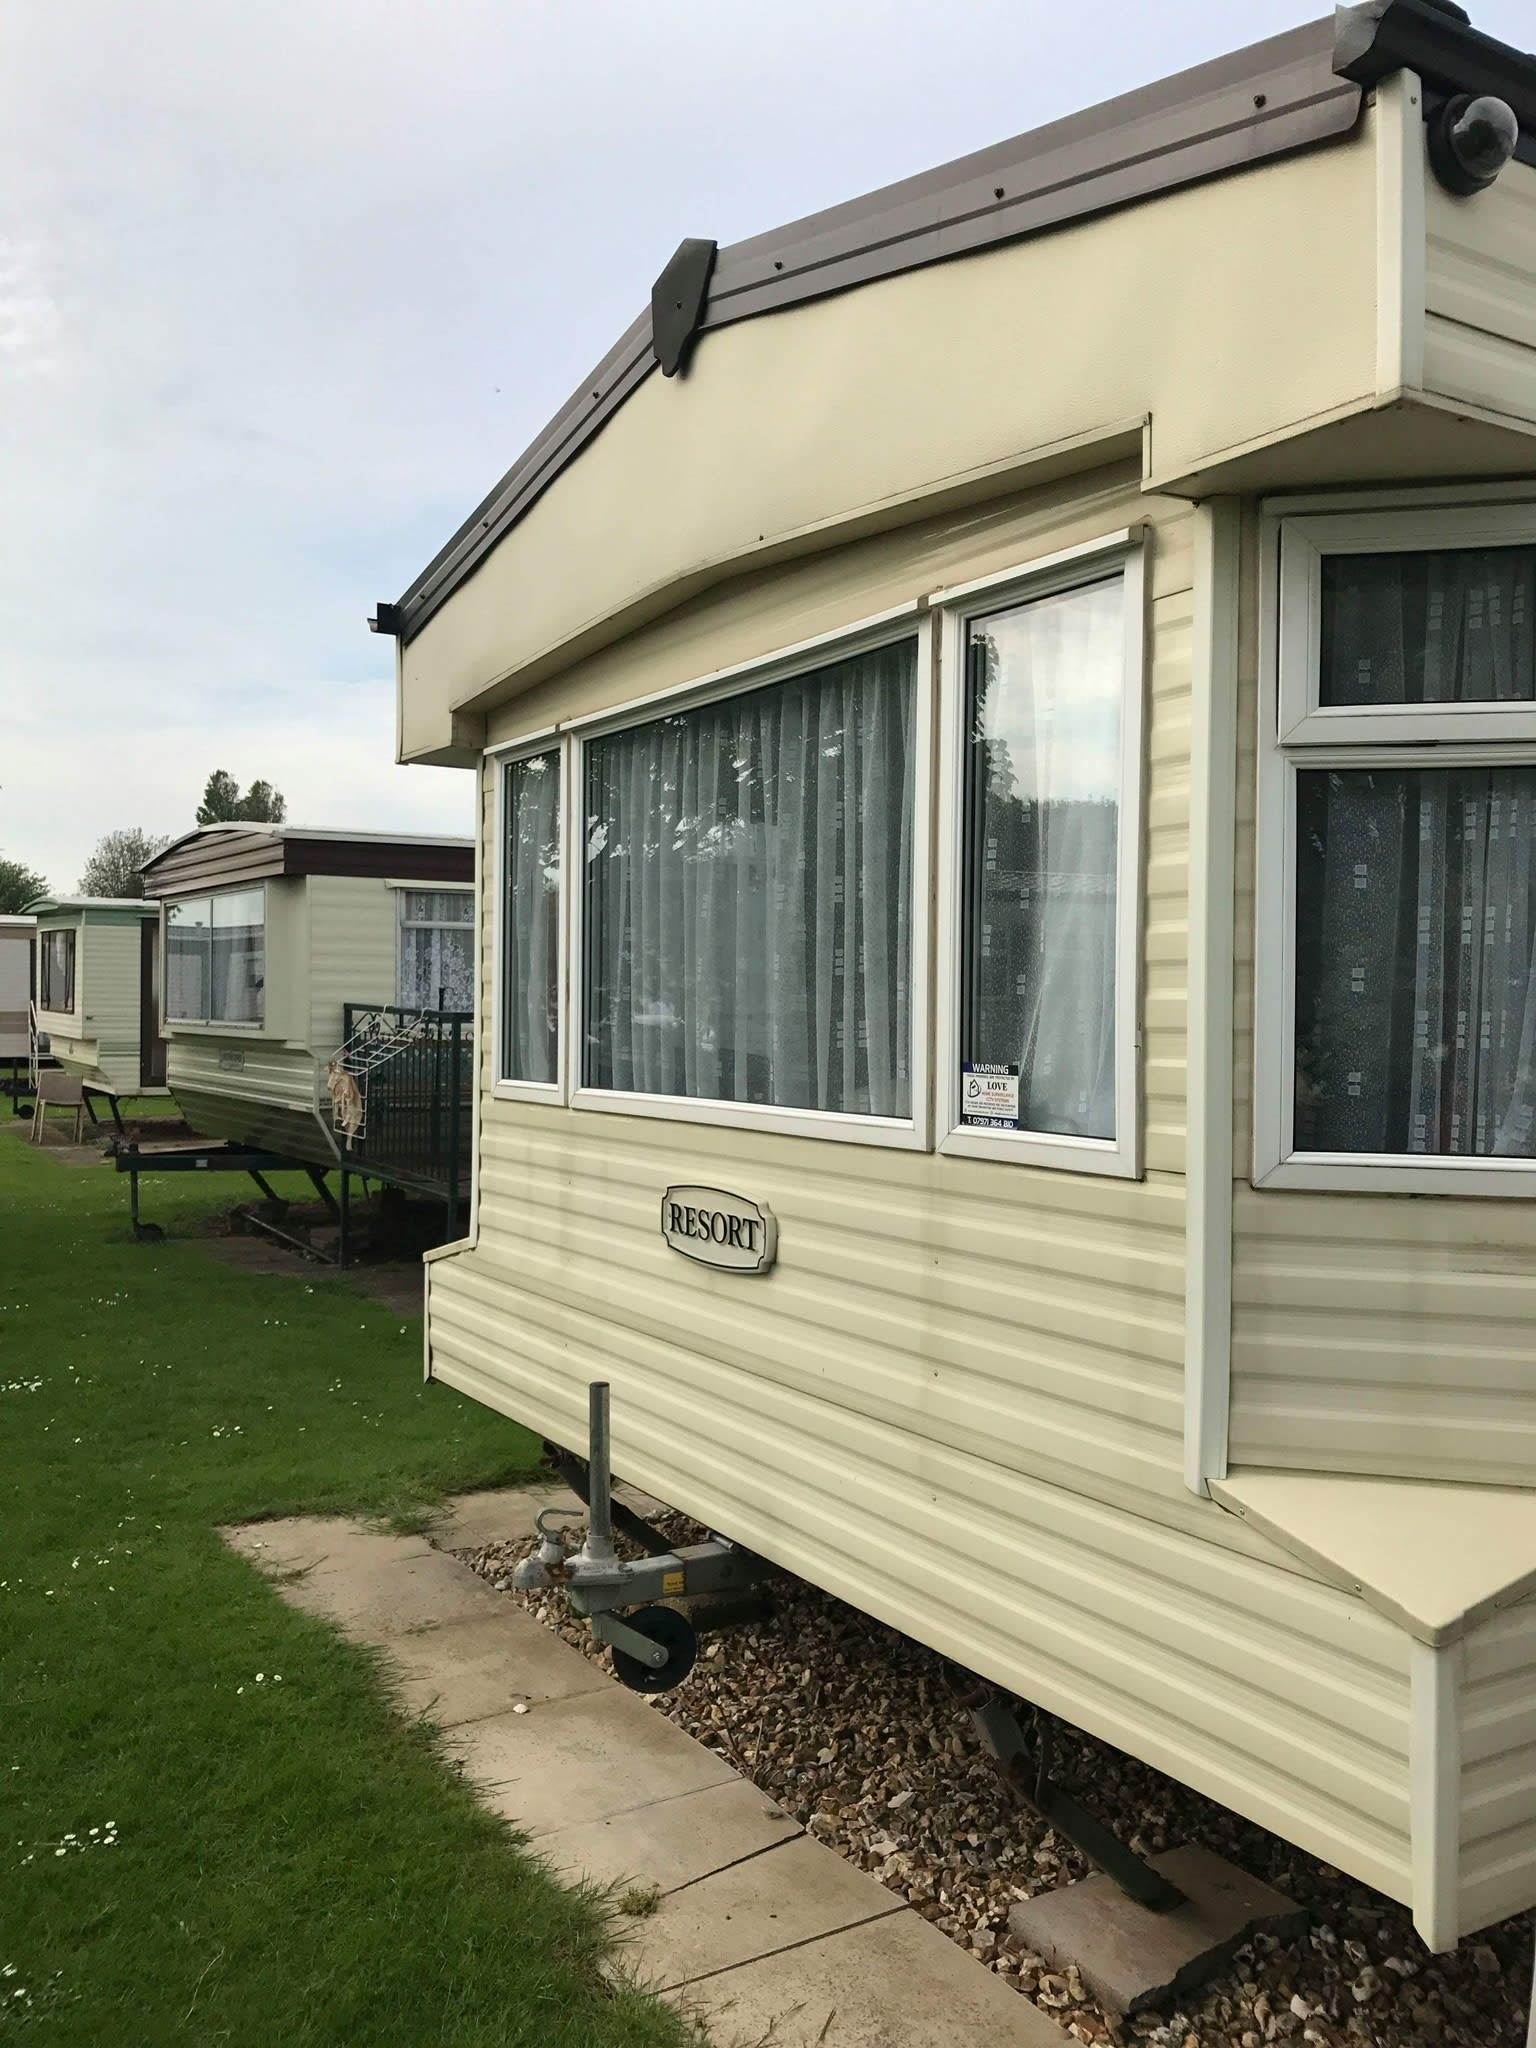 Static Caravan Hire, by GG Entertainments